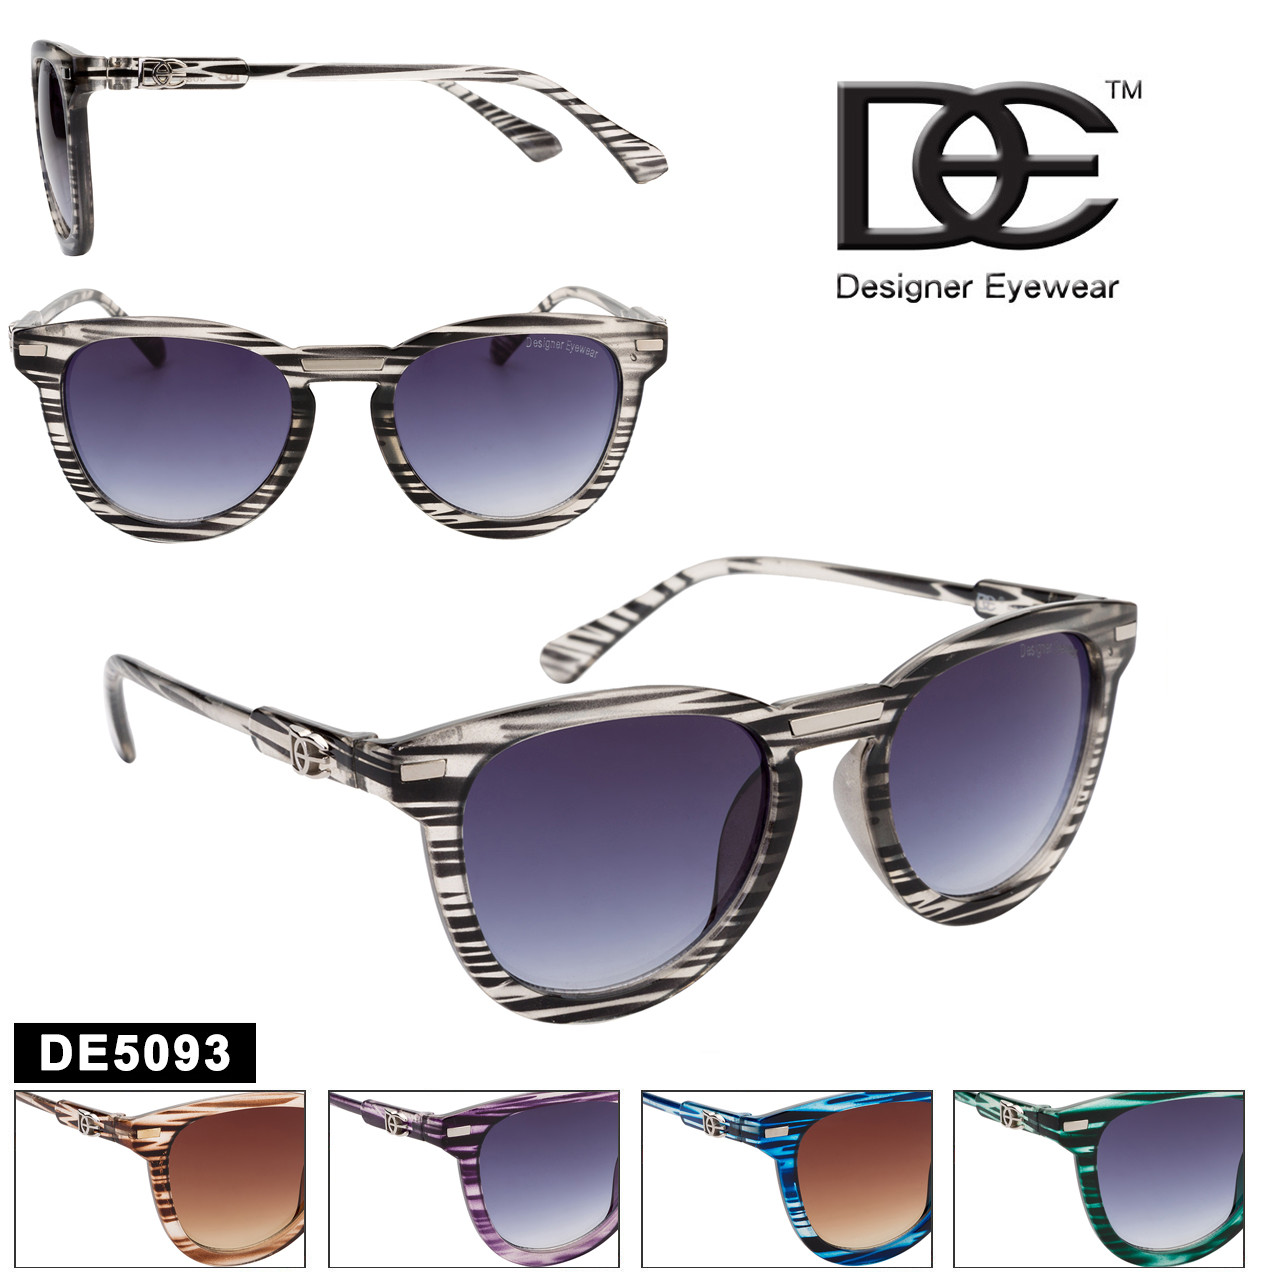 DE™ Fashion Sunglasses - Style #DE5093